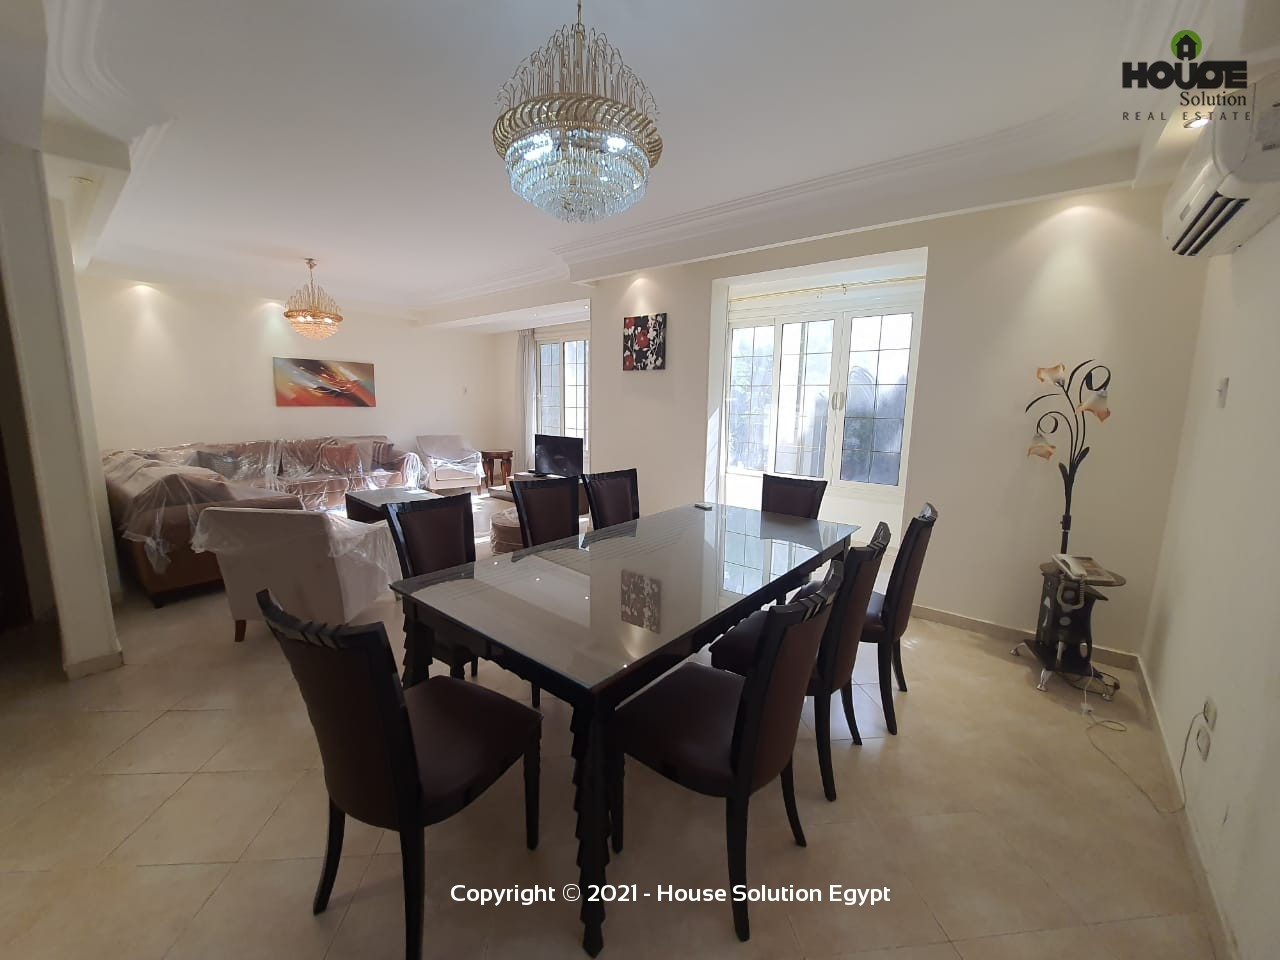 Bright Modern Furnished Apartment For Rent In Degla El Maadi Cairo Egypt - 4968 Featured Image